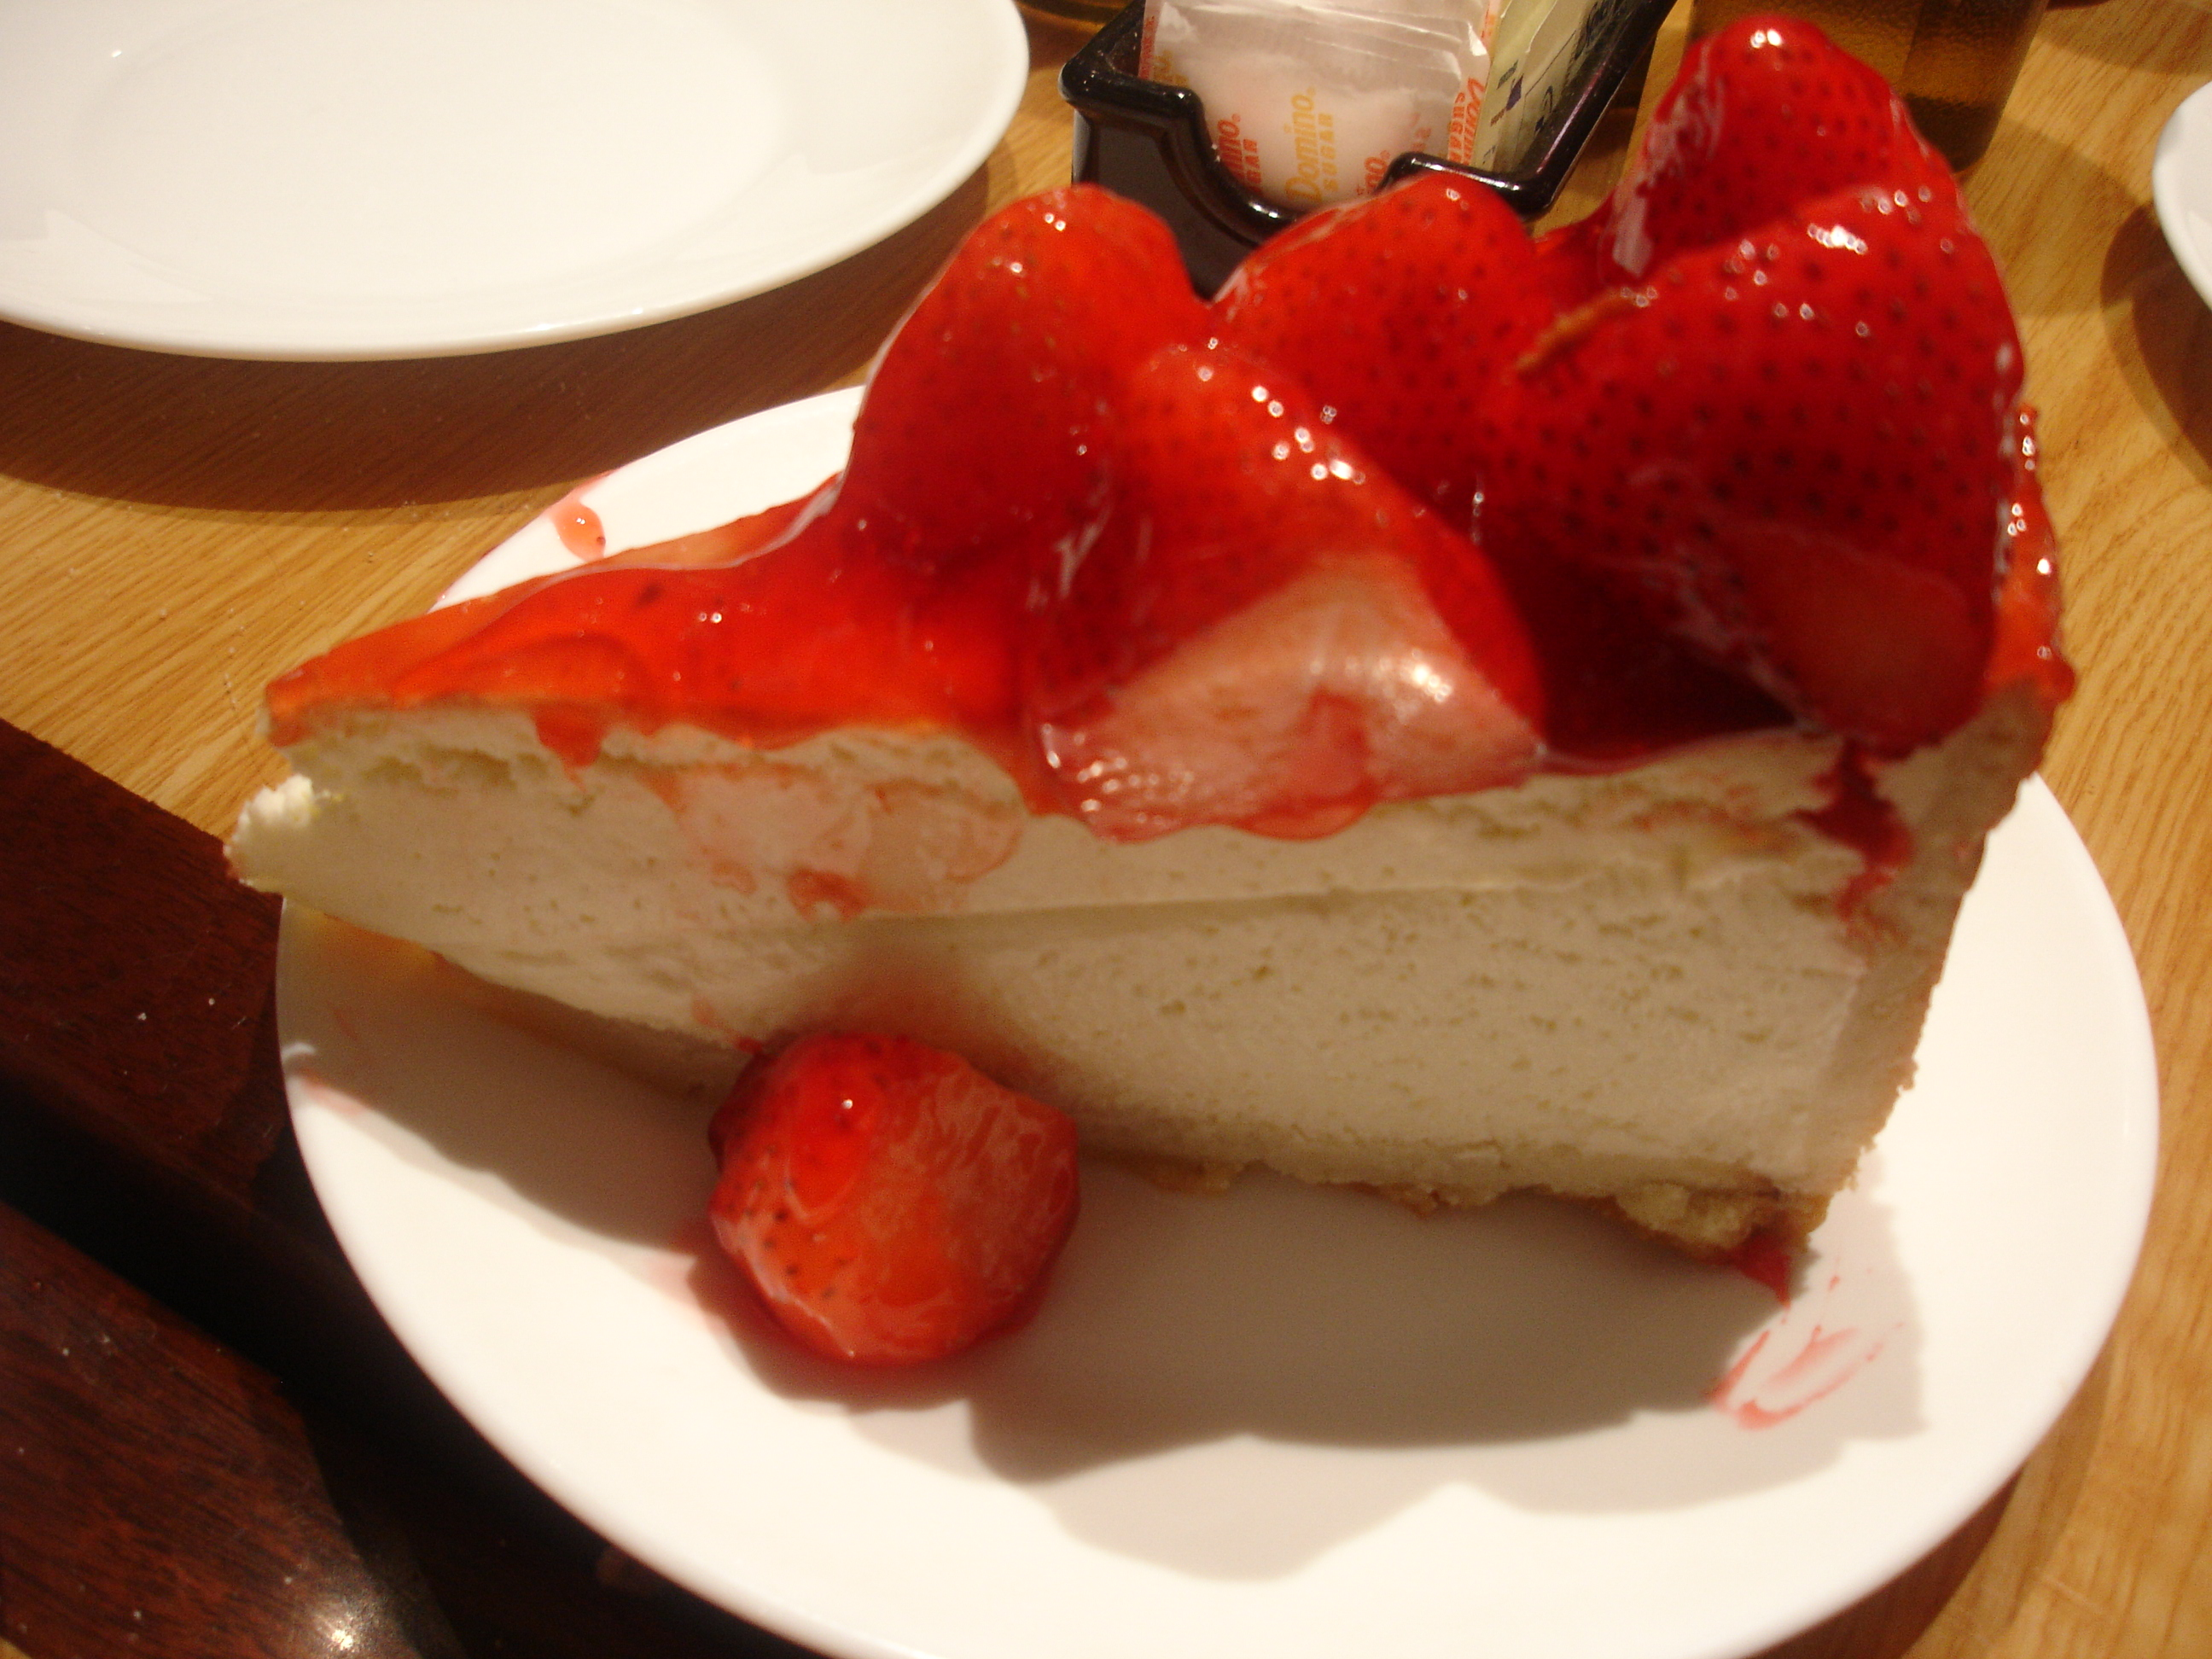 File:Carnegie Deli Strawberry Cheesecake.jpg - Wikimedia Commons